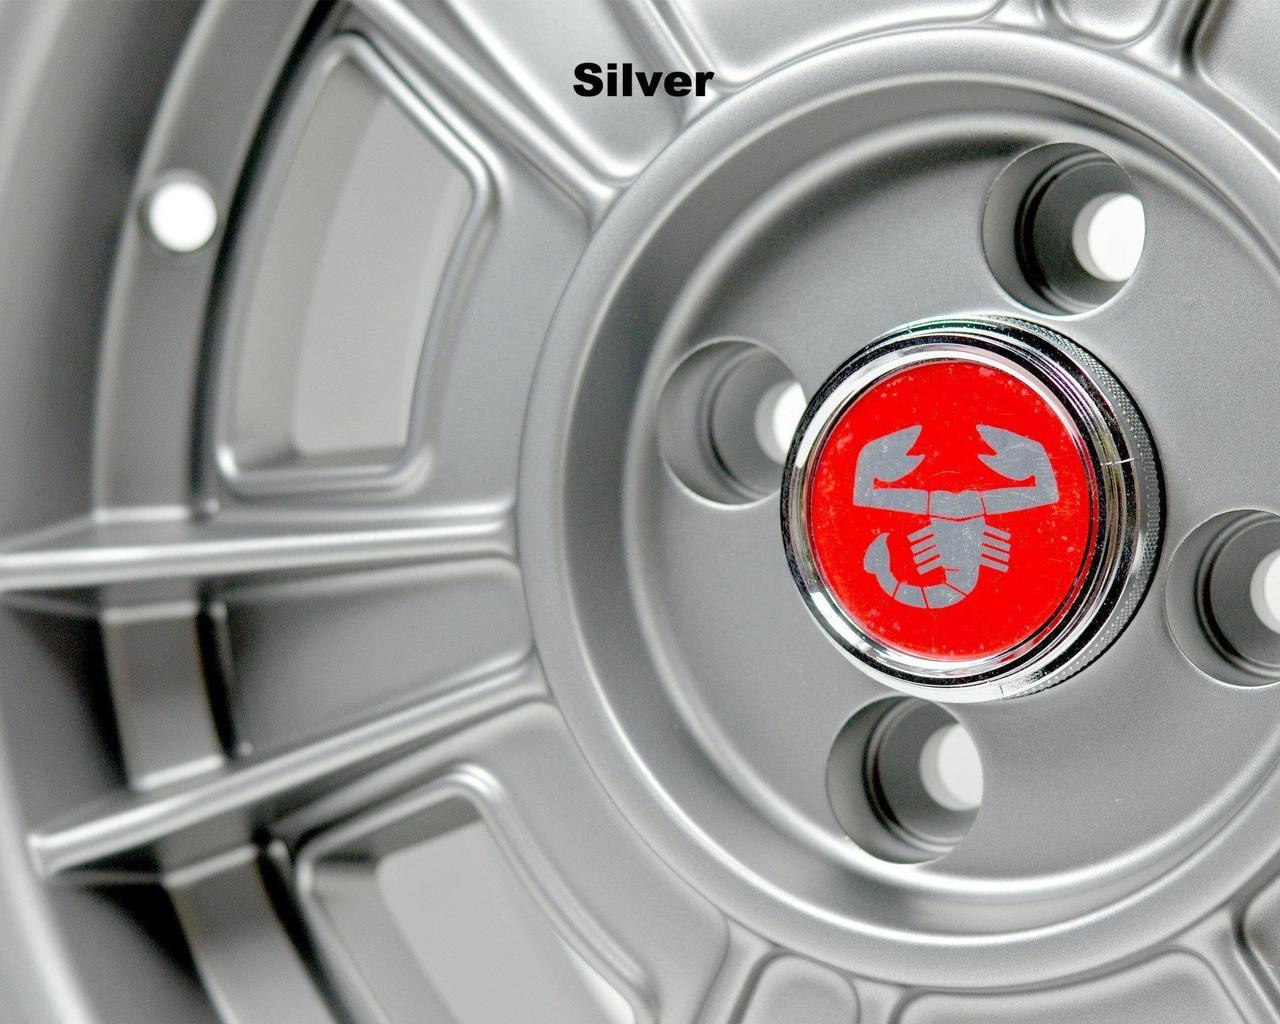 CD-66 style wheel Set of 4 Silver - Auto Ricambi FIAT 124 Spider, Sport Coupe, Spider 2000 and Pininfarina - 1966-1985